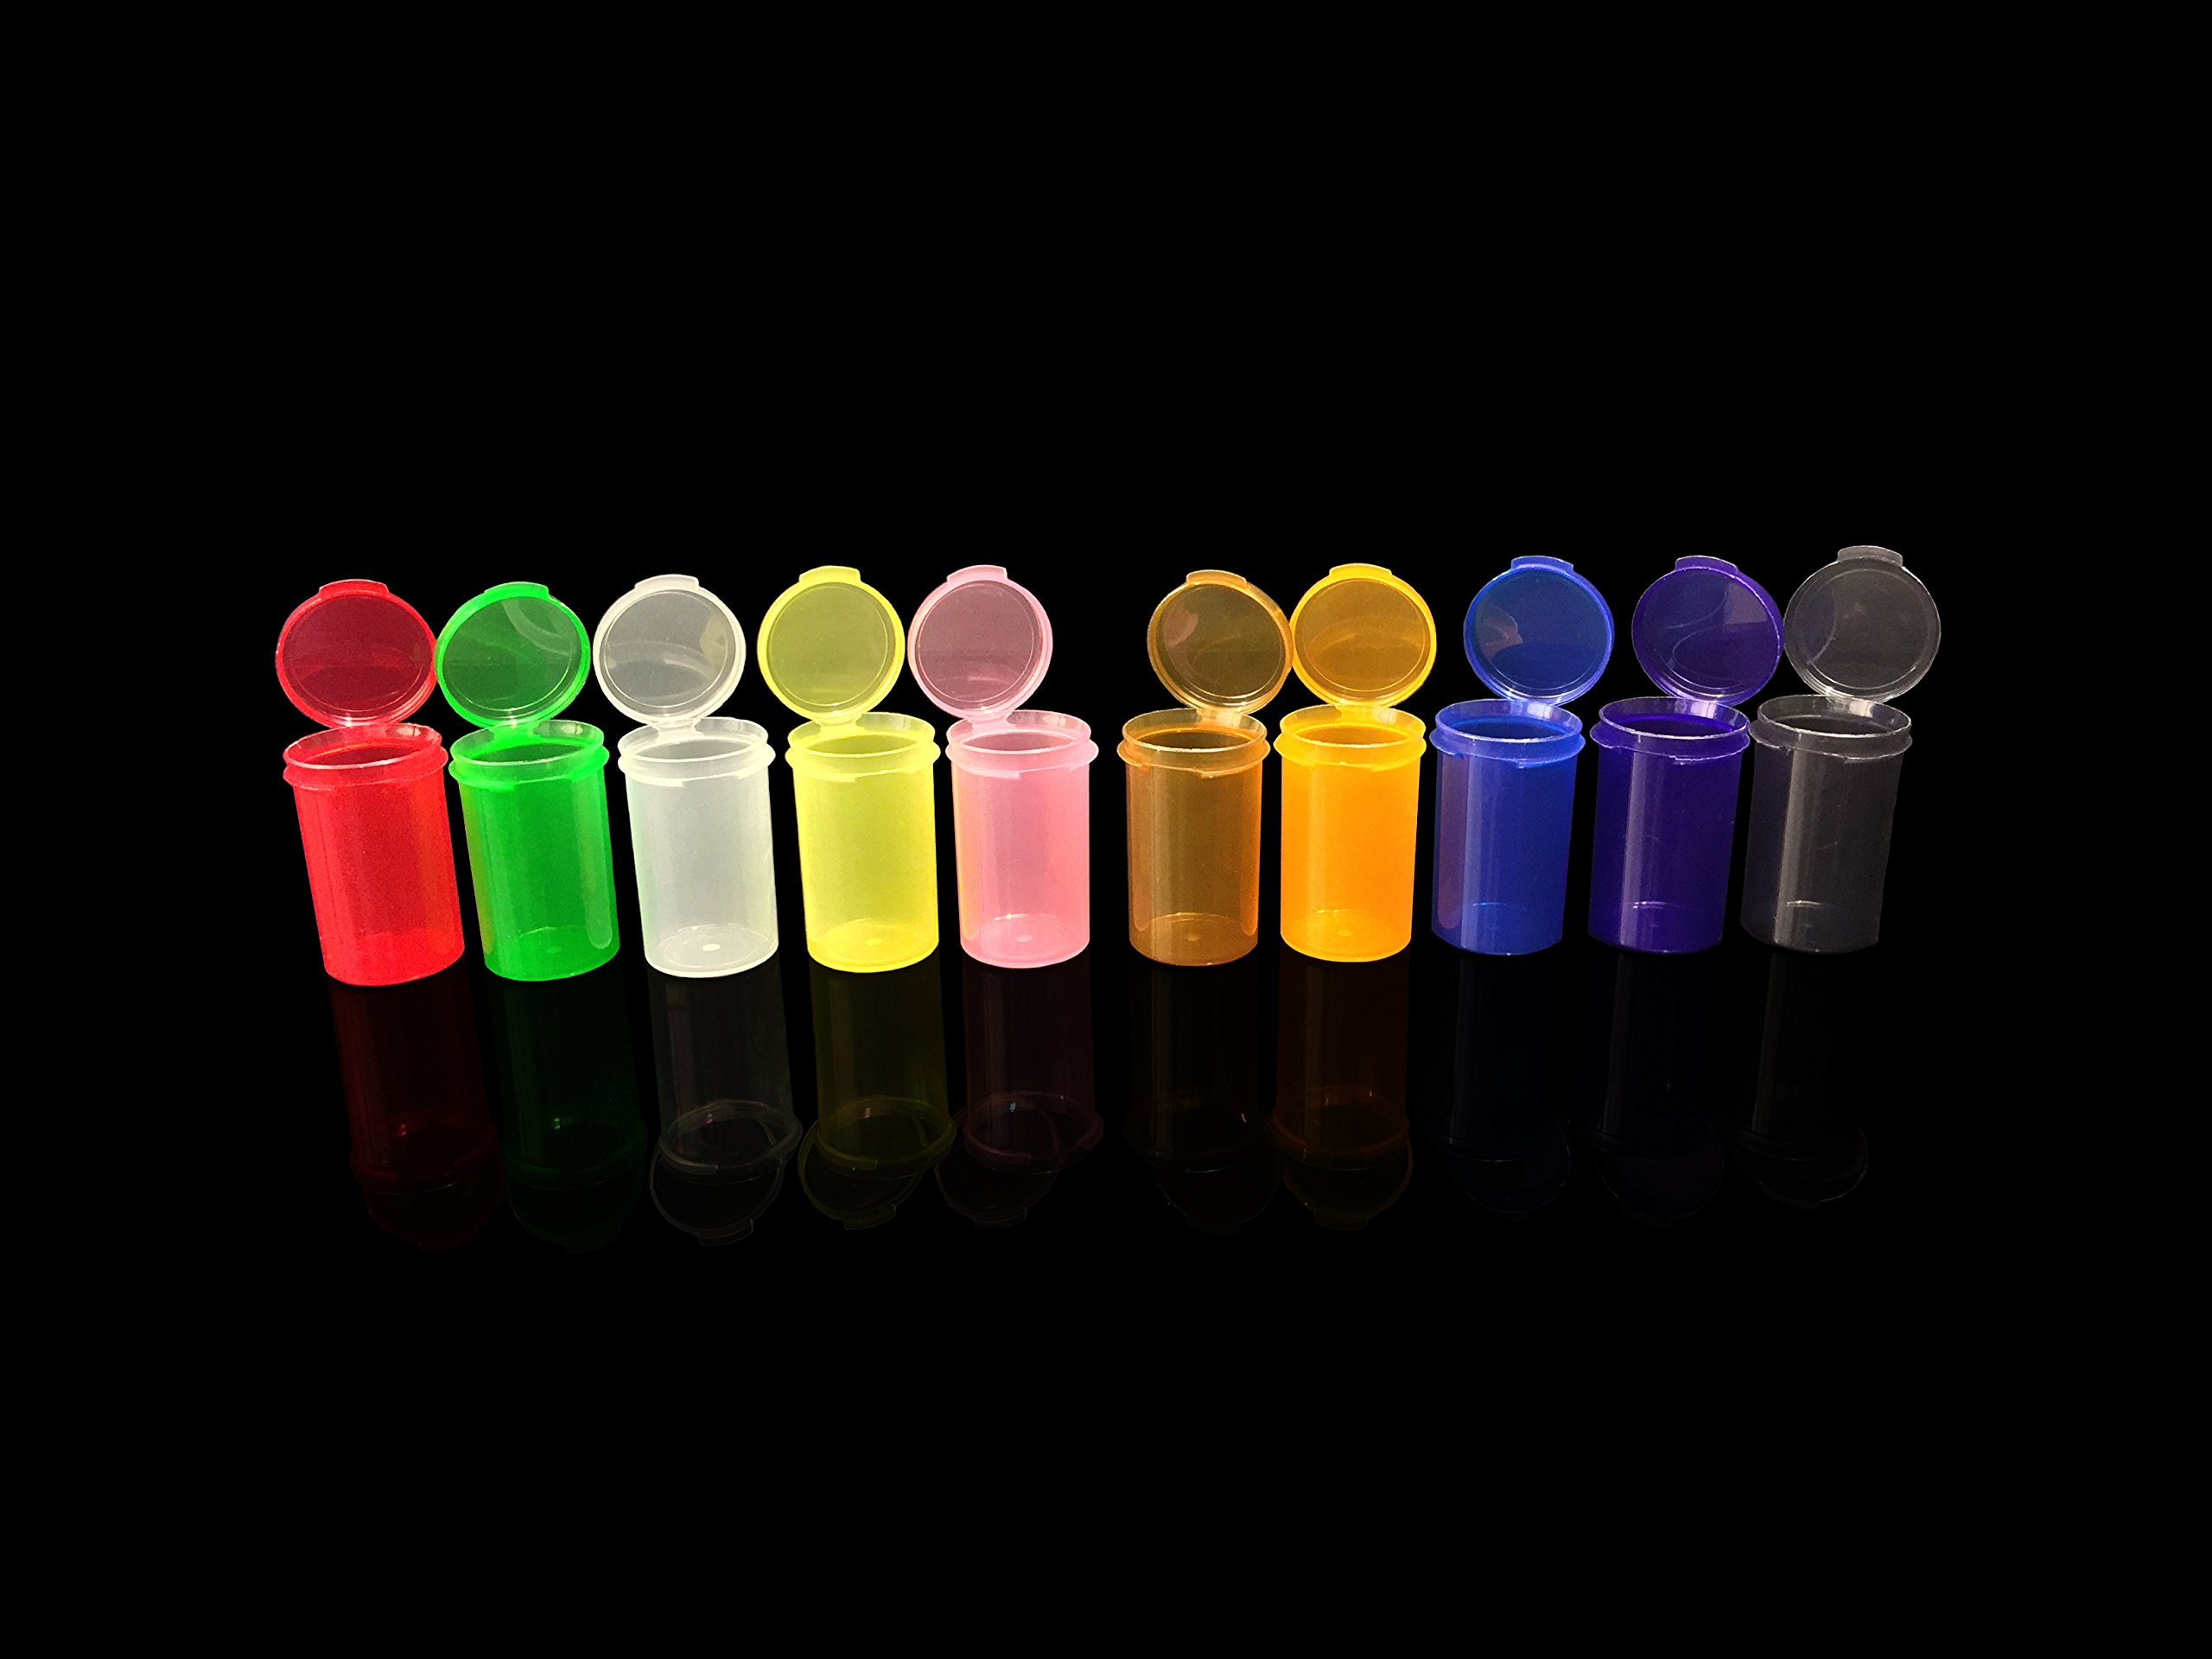 6 DRAM Small Round HINGED Container Crafts, RX Pill Bottles CONTAINERS Mix Color (600) by GCPACKS